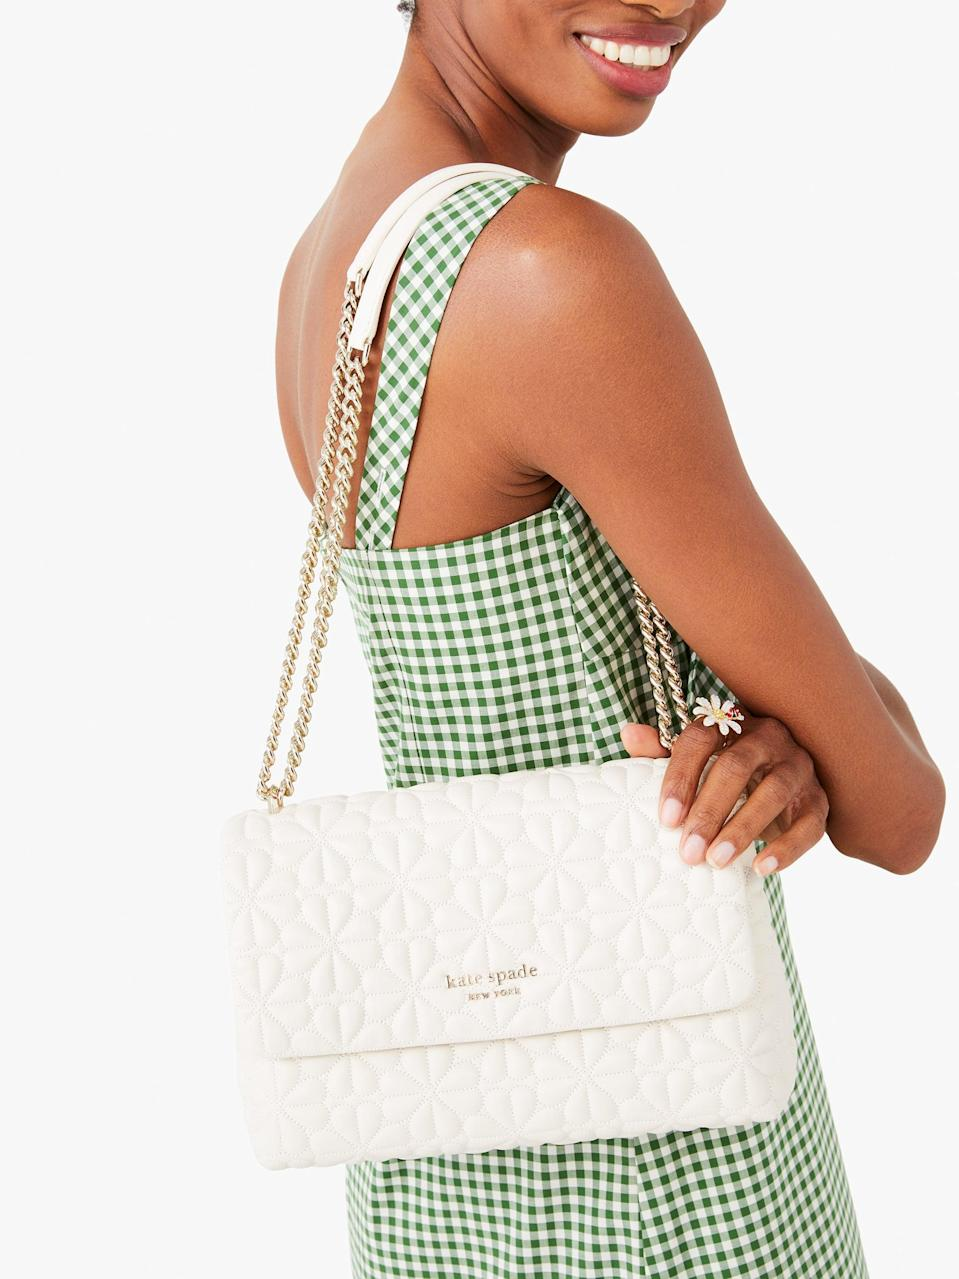 <p>This <span>Kate Spade New York Bloom Large Flap Shoulder Bag</span> ($398) is just one of many gorgeous new releases the brand has dropped this month, but this timeless piece is at the top of my wish list.</p>